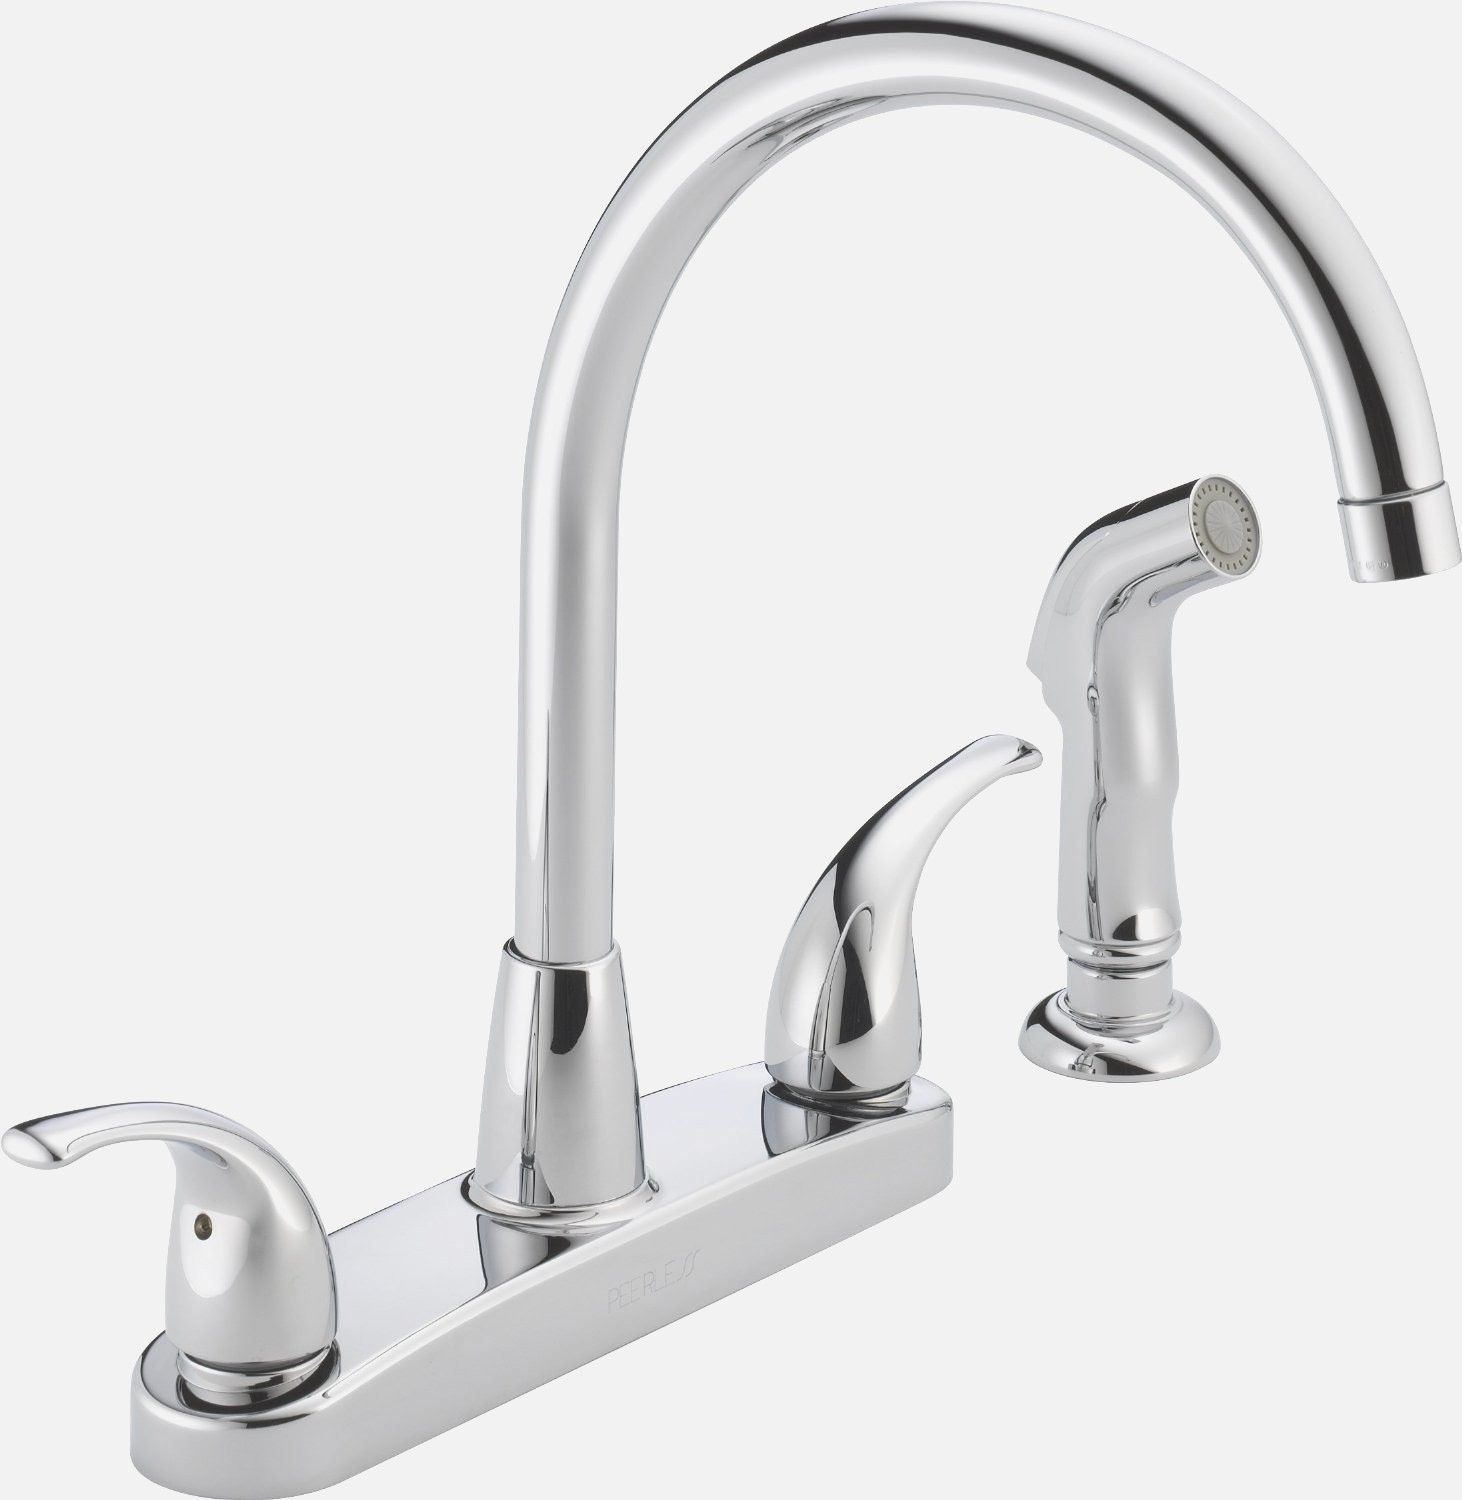 Kitchen Sink Faucets at Lowes - delta kitchen sink faucets lowes ...